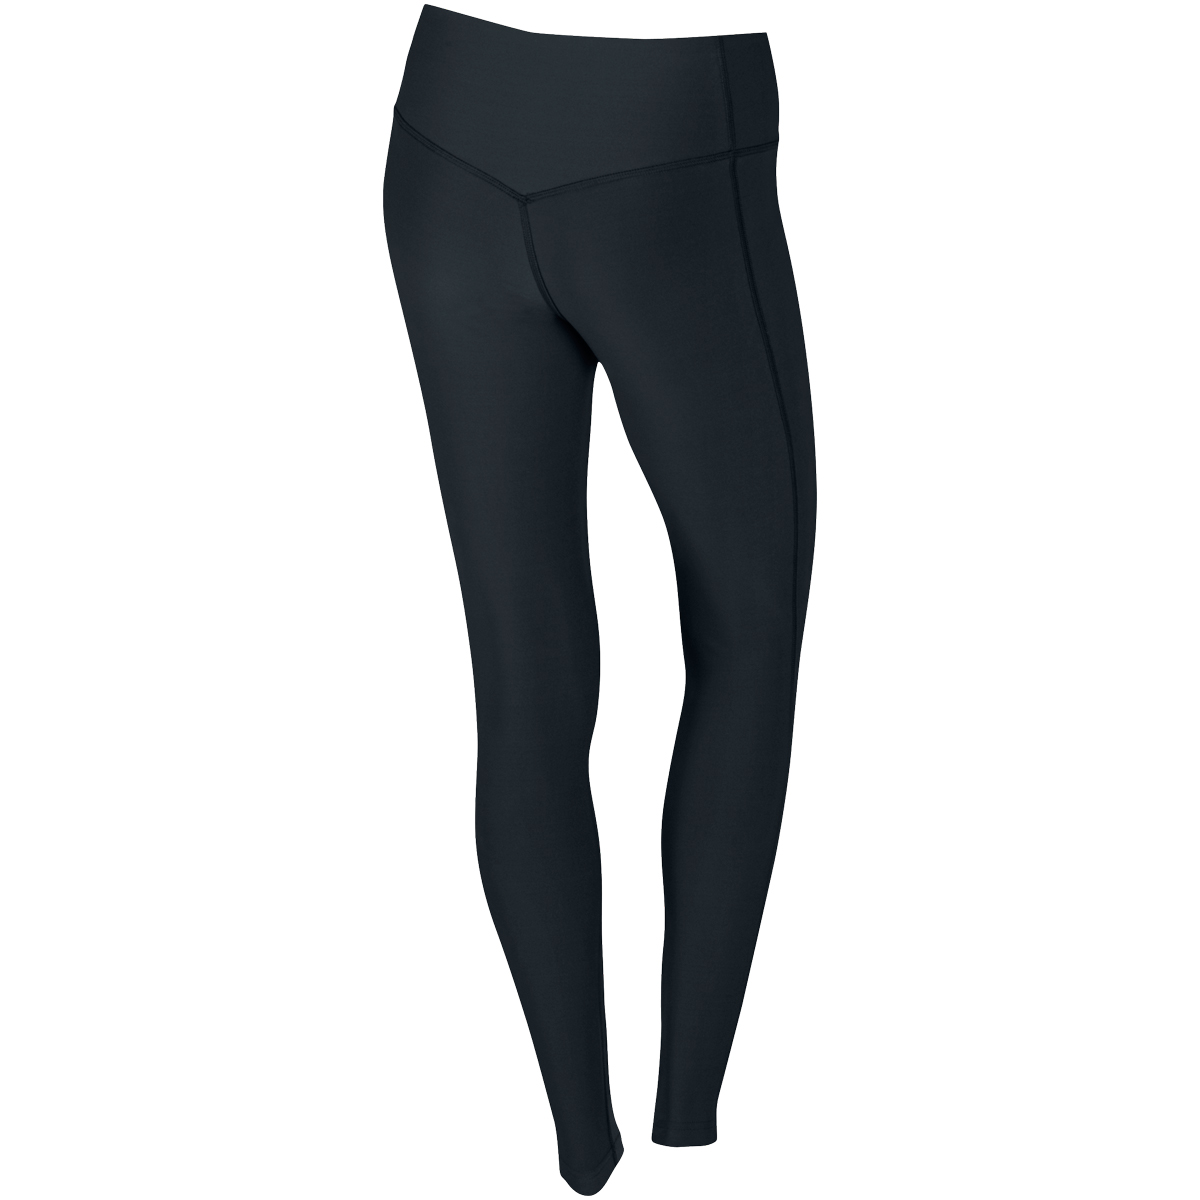 Fantastic The Nike Legendary Tight Women S Training Pants  95 Nike Sold On